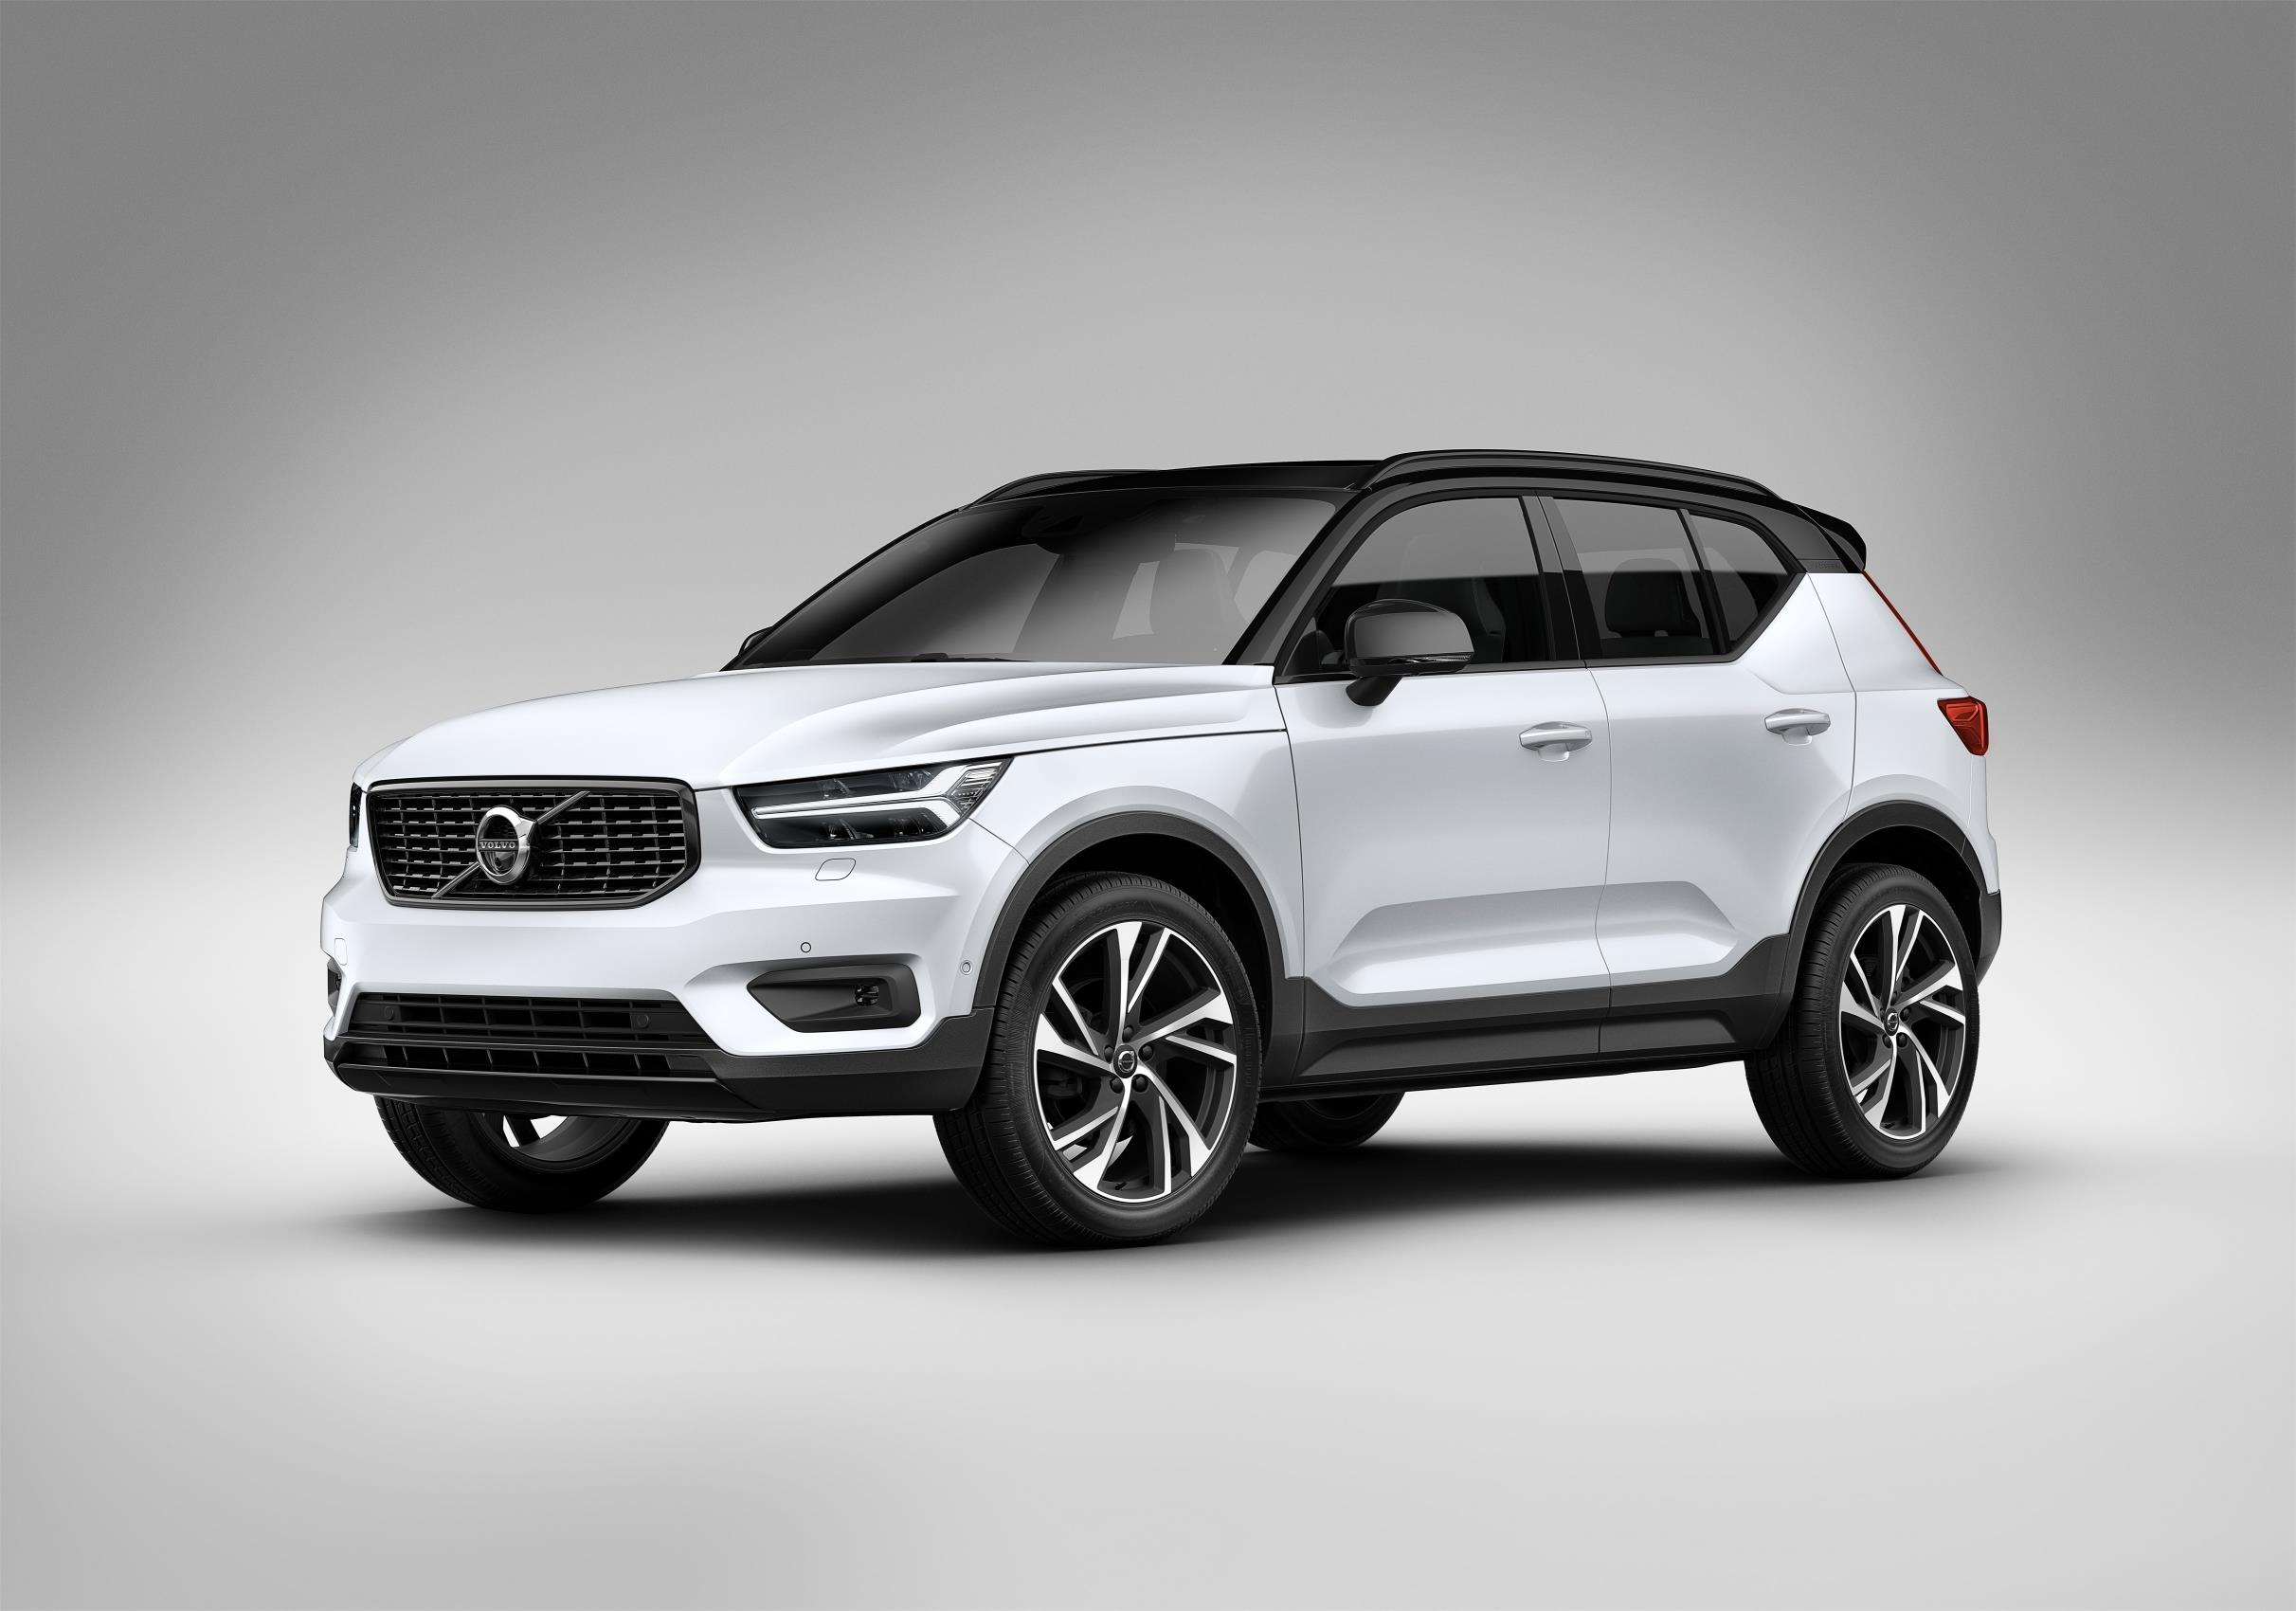 2018 volvo xc40 compact suv. Black Bedroom Furniture Sets. Home Design Ideas